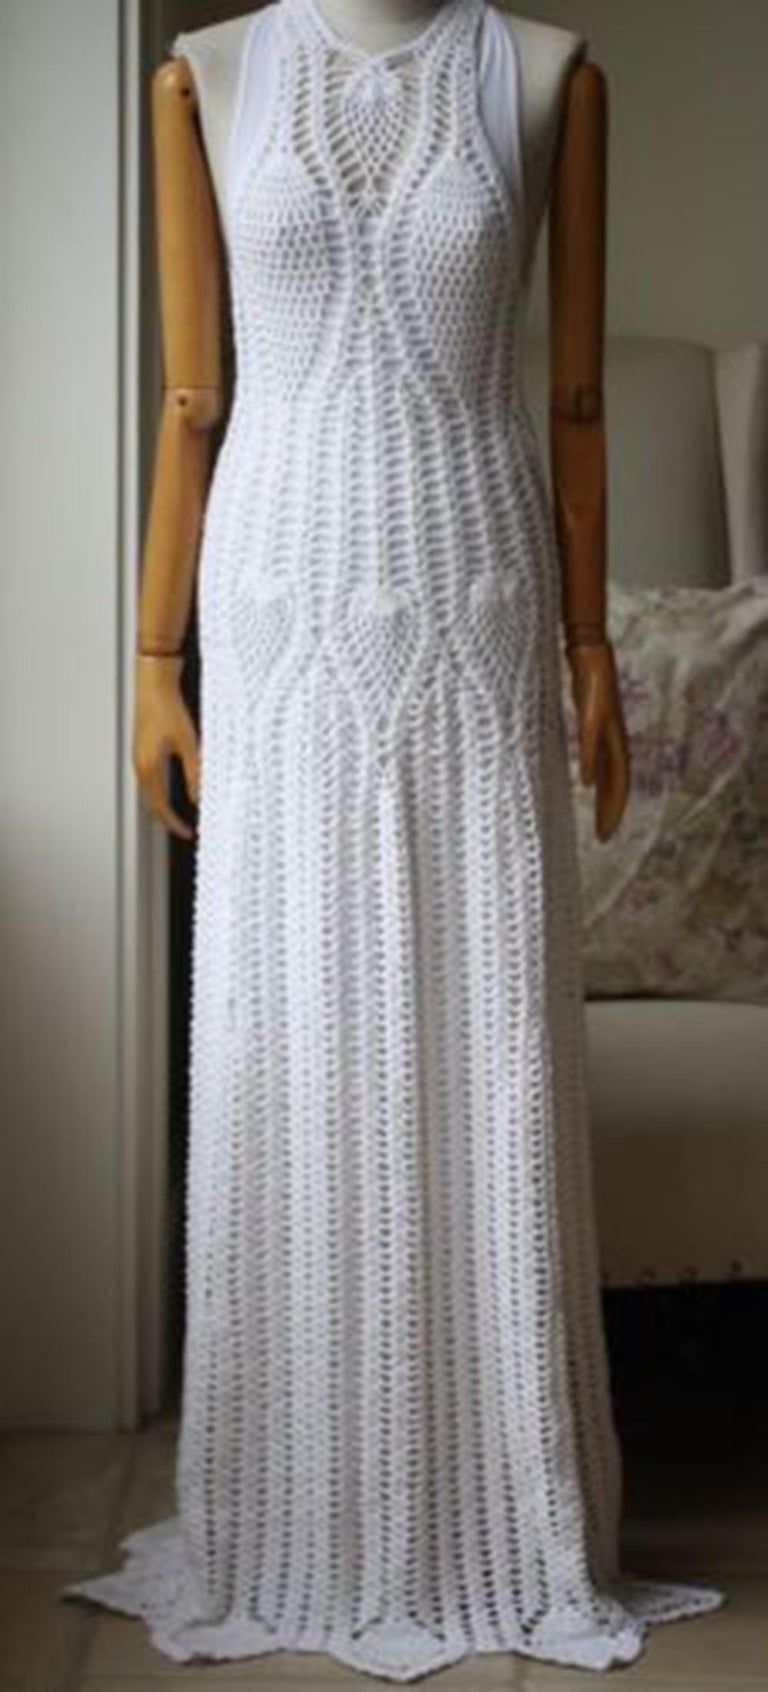 Inspired by a trip to Sayulita, Mexico, Rosetta Getty's ivory dress captures the spirit of youthfulness and travel. This floor-length style is hand-crocheted from glossy cotton-blend and includes a slip for coverage. Ivory crocheted cotton-blend.